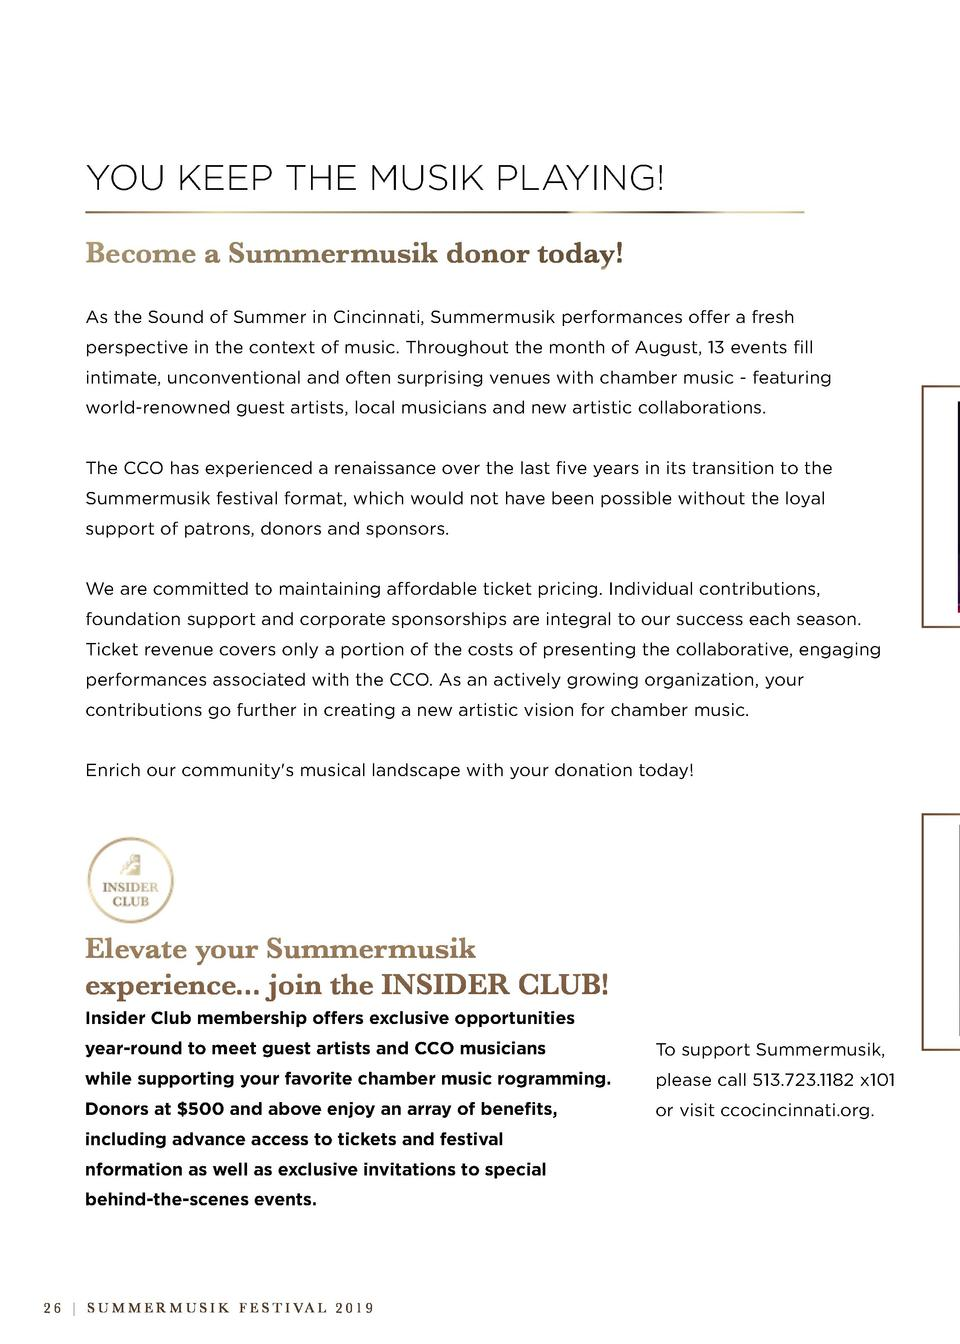 YOU KEEP THE MUSIK PLAYING  Become a Summermusik donor today  As the Sound of Summer in Cincinnati, Summermusik performanc...